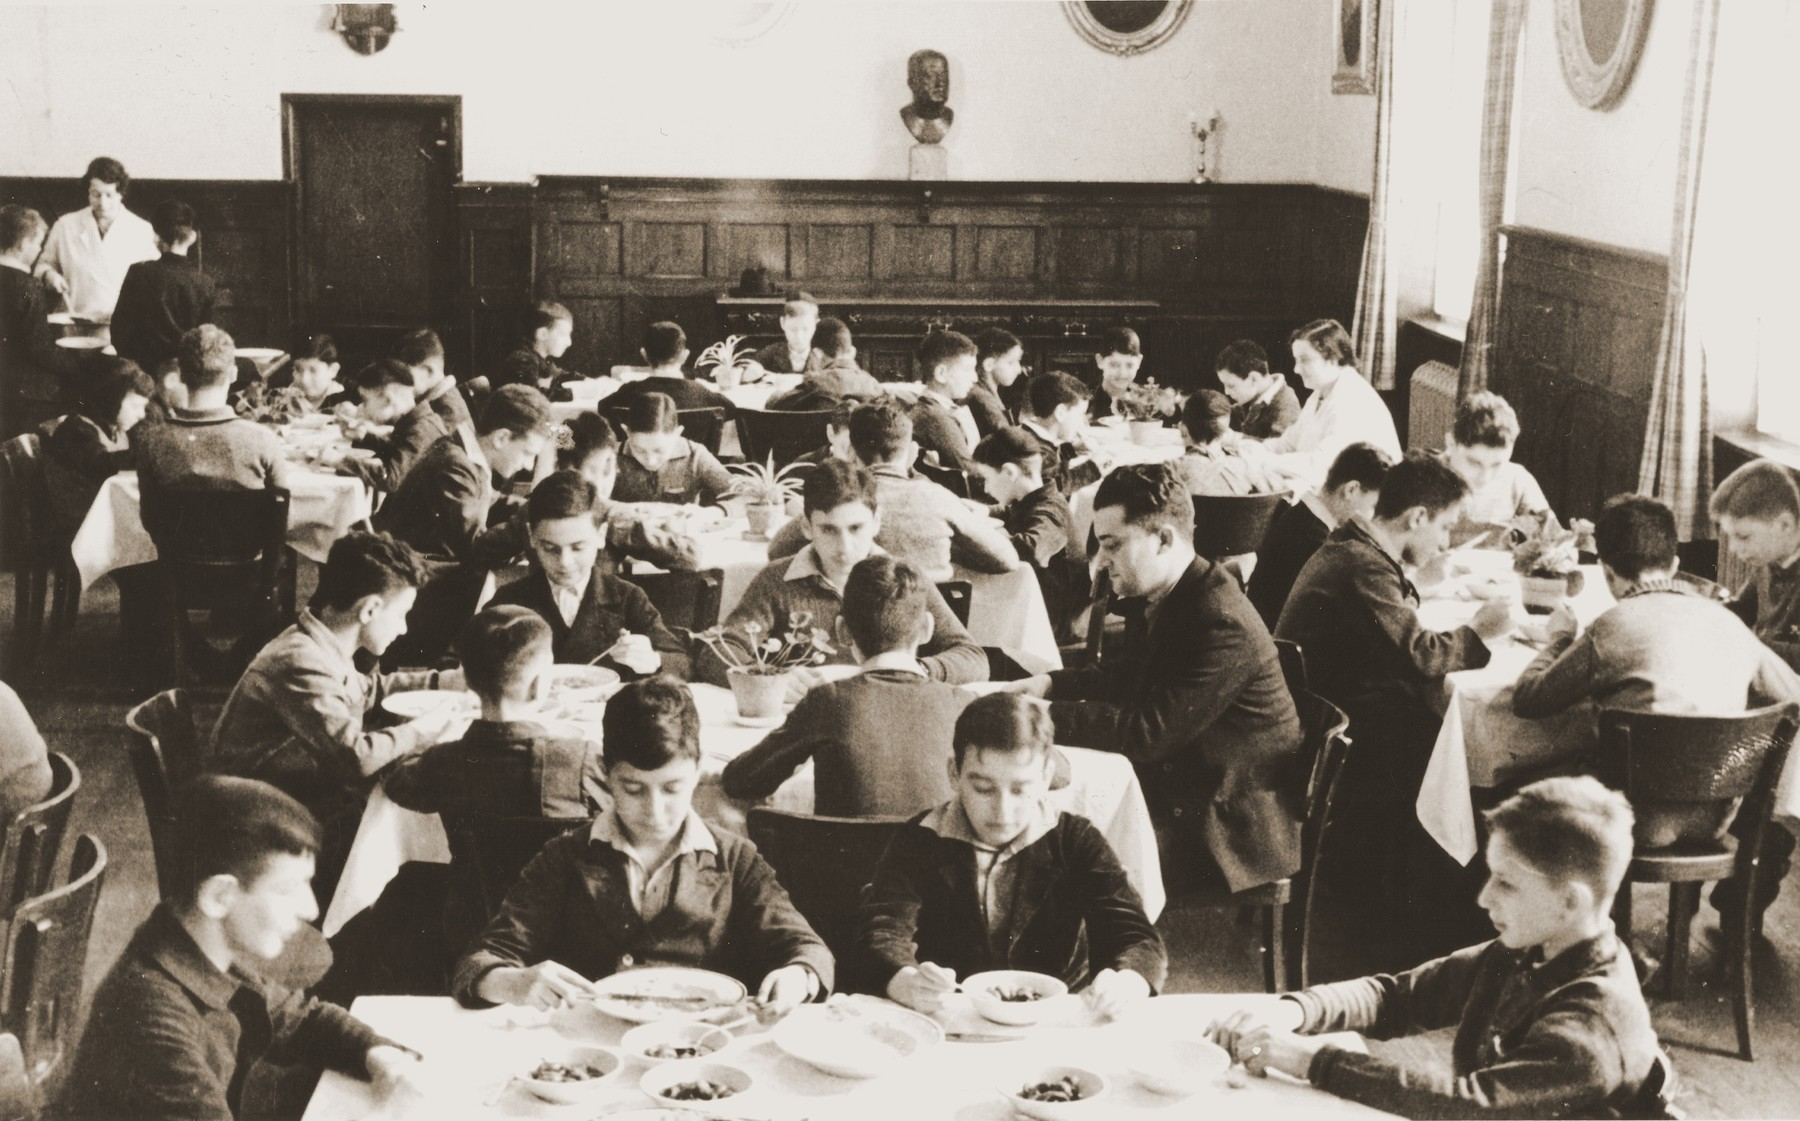 The children eat a meal in the dining room of the Baruch Auerbach Jewish orphanage in Berlin.